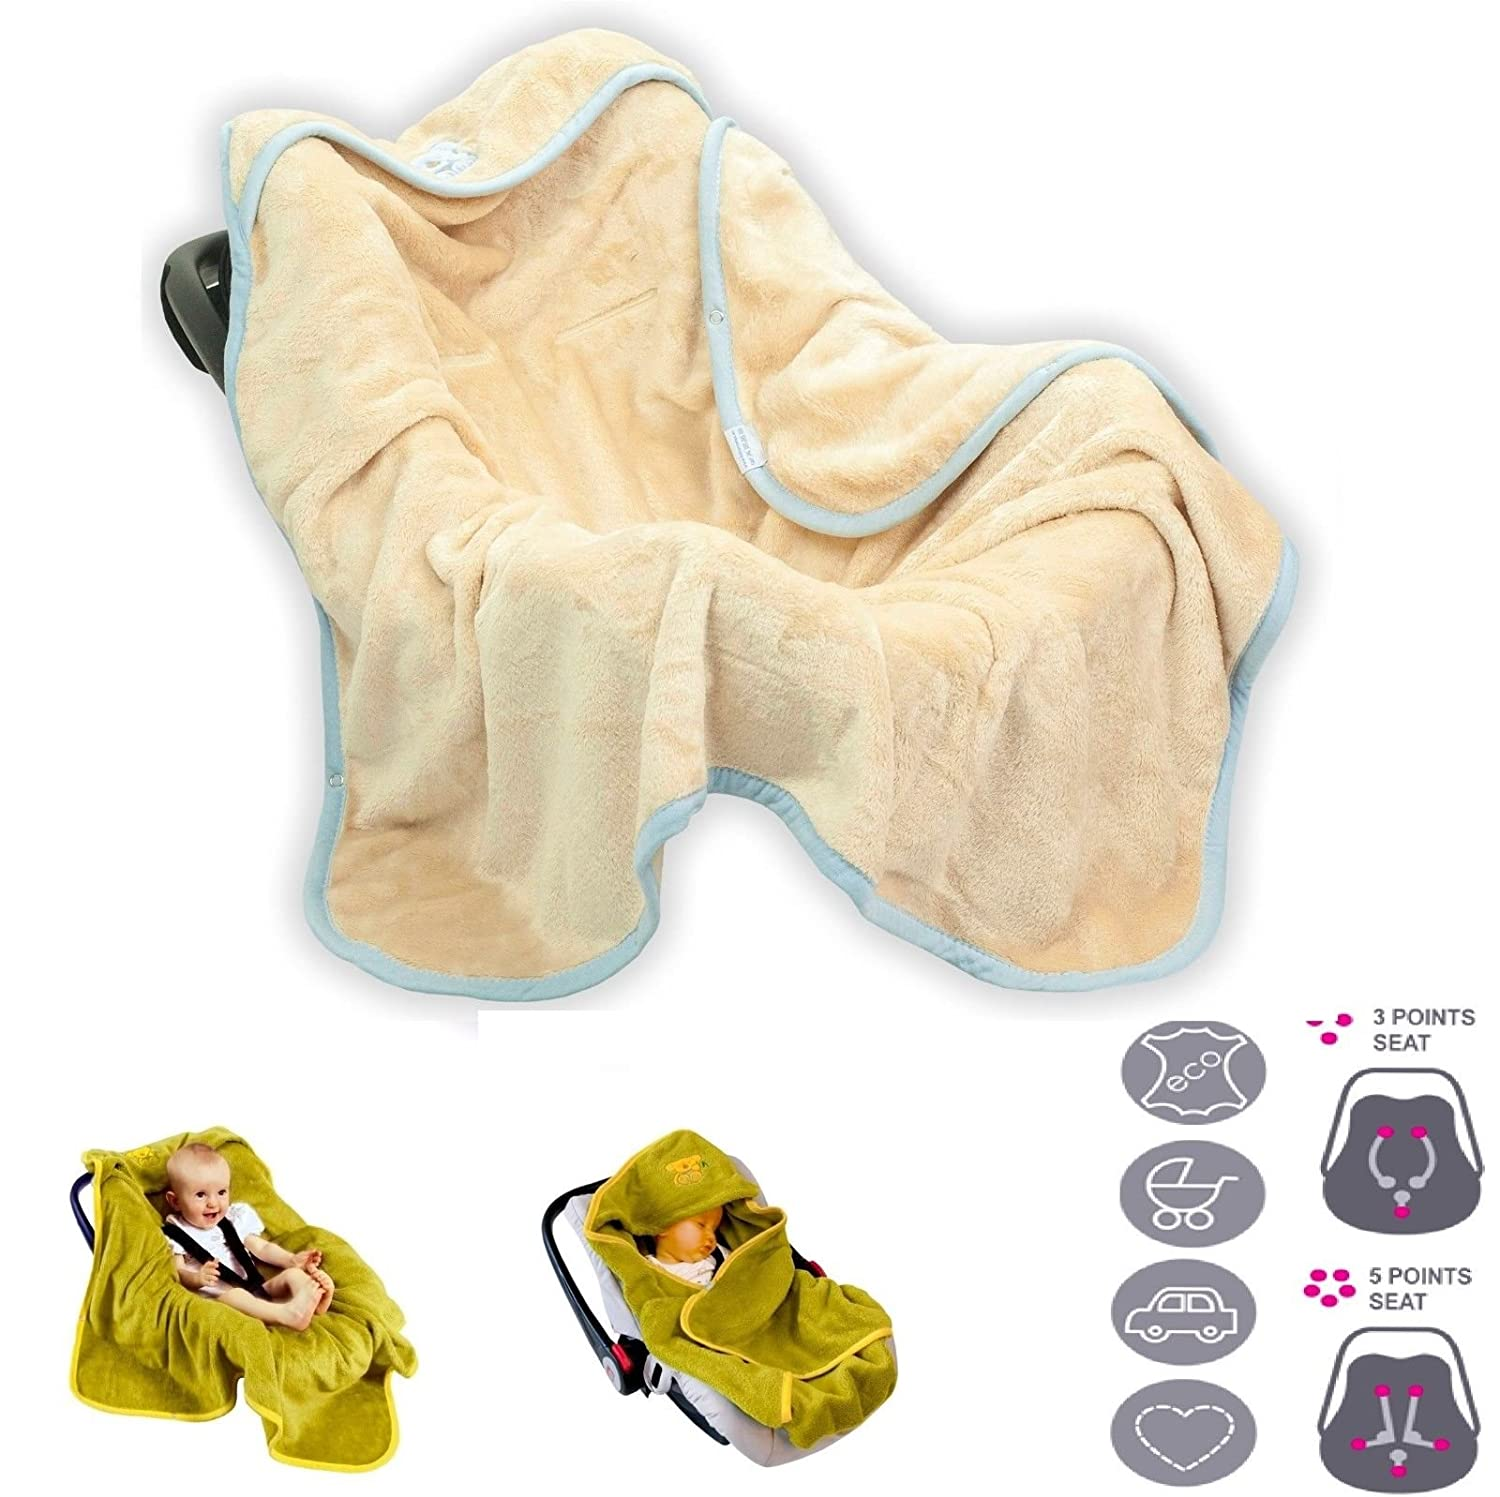 Car Seat Stroller Koala Swaddle Blanket Wrap Cosytoes Footmuffs Seat Belt Slots Beige BabyMatex